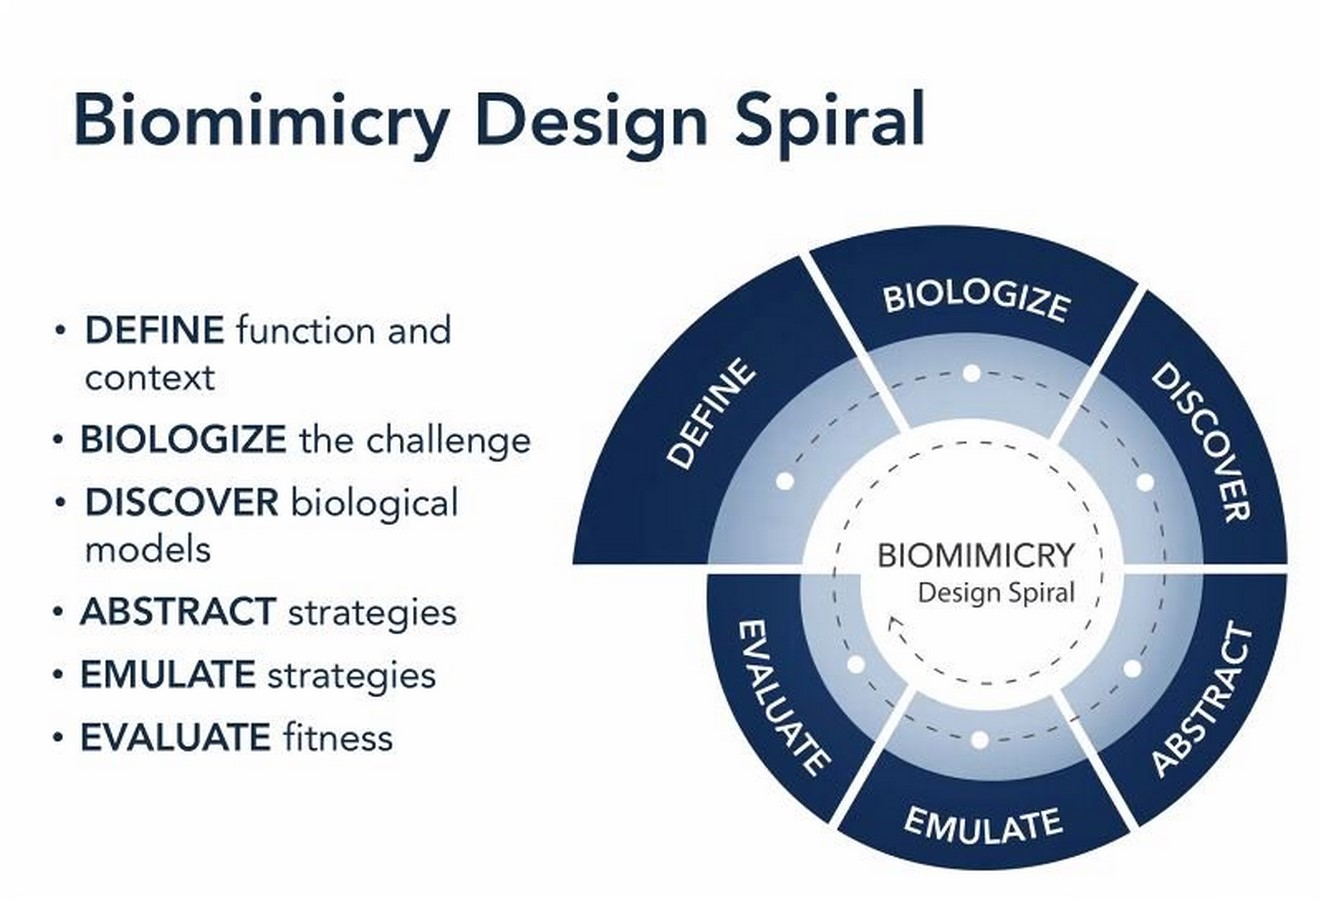 10 Things to remember when designing with biomimicry - Sheet2